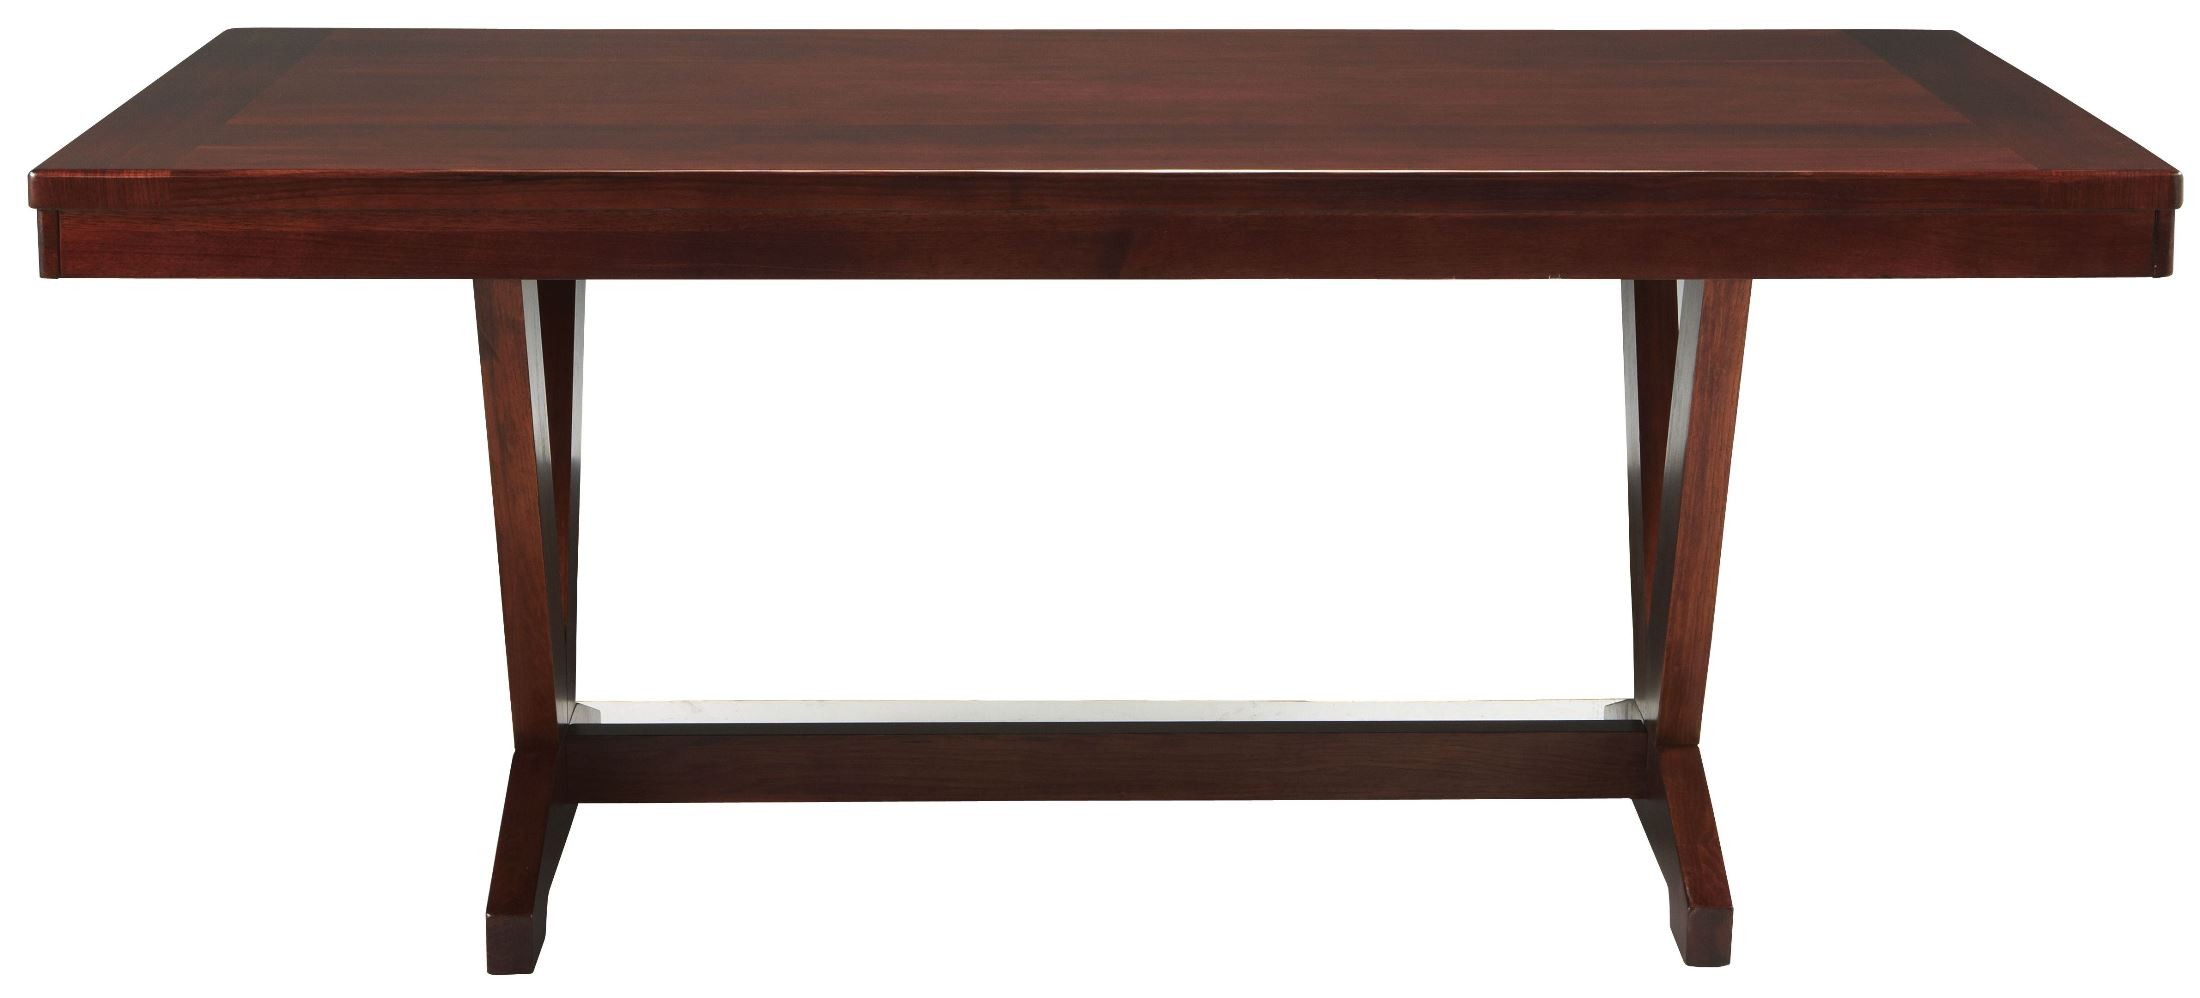 Studio Brown Mahogany Trestle Dining Room Set from  : 431 621 from colemanfurniture.com size 2200 x 998 jpeg 127kB